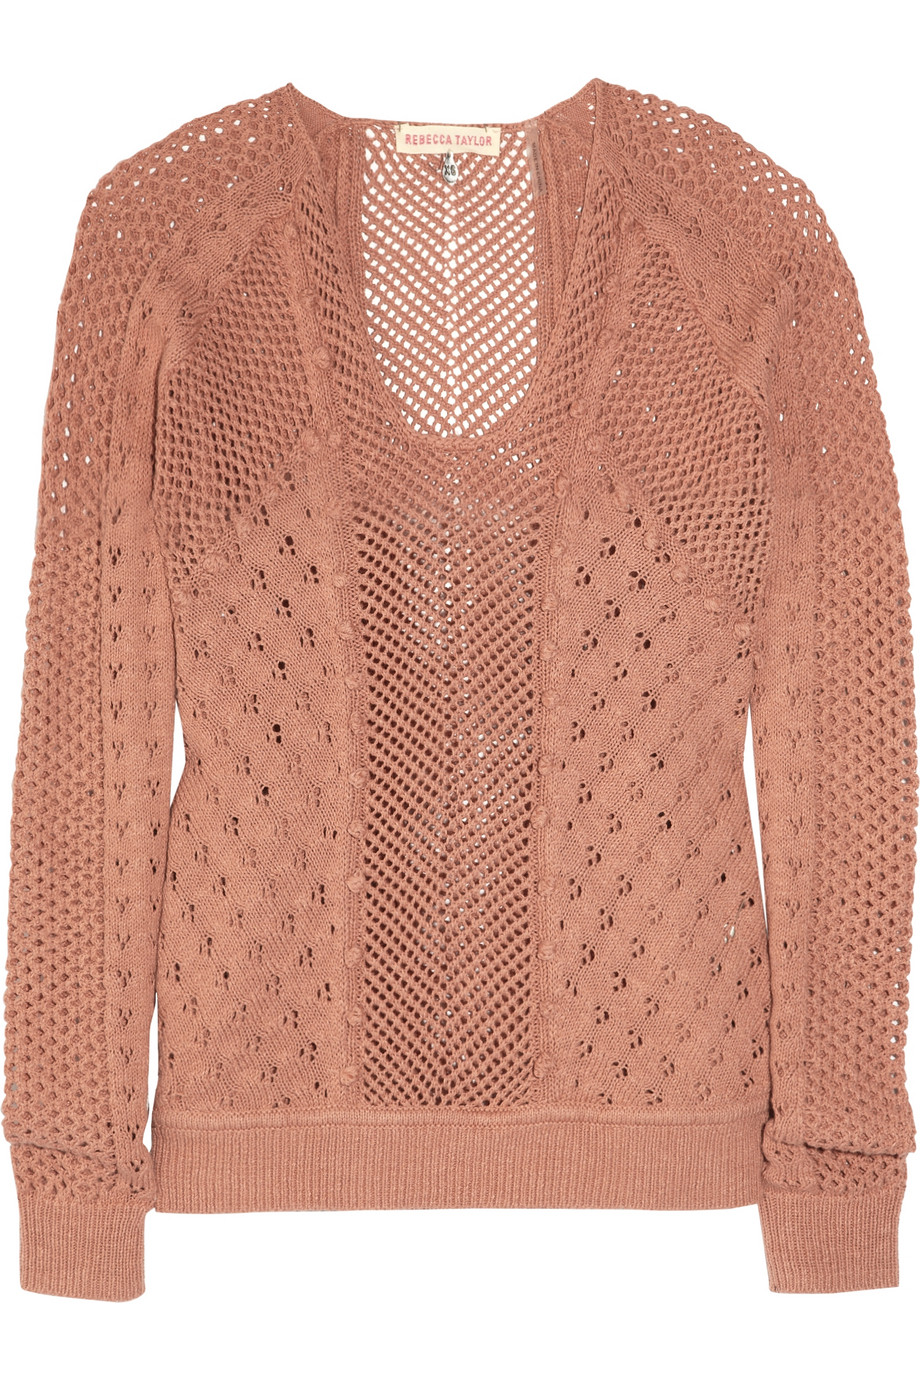 Rebecca taylor Cotton Pointelle Cardigan in Pink | Lyst